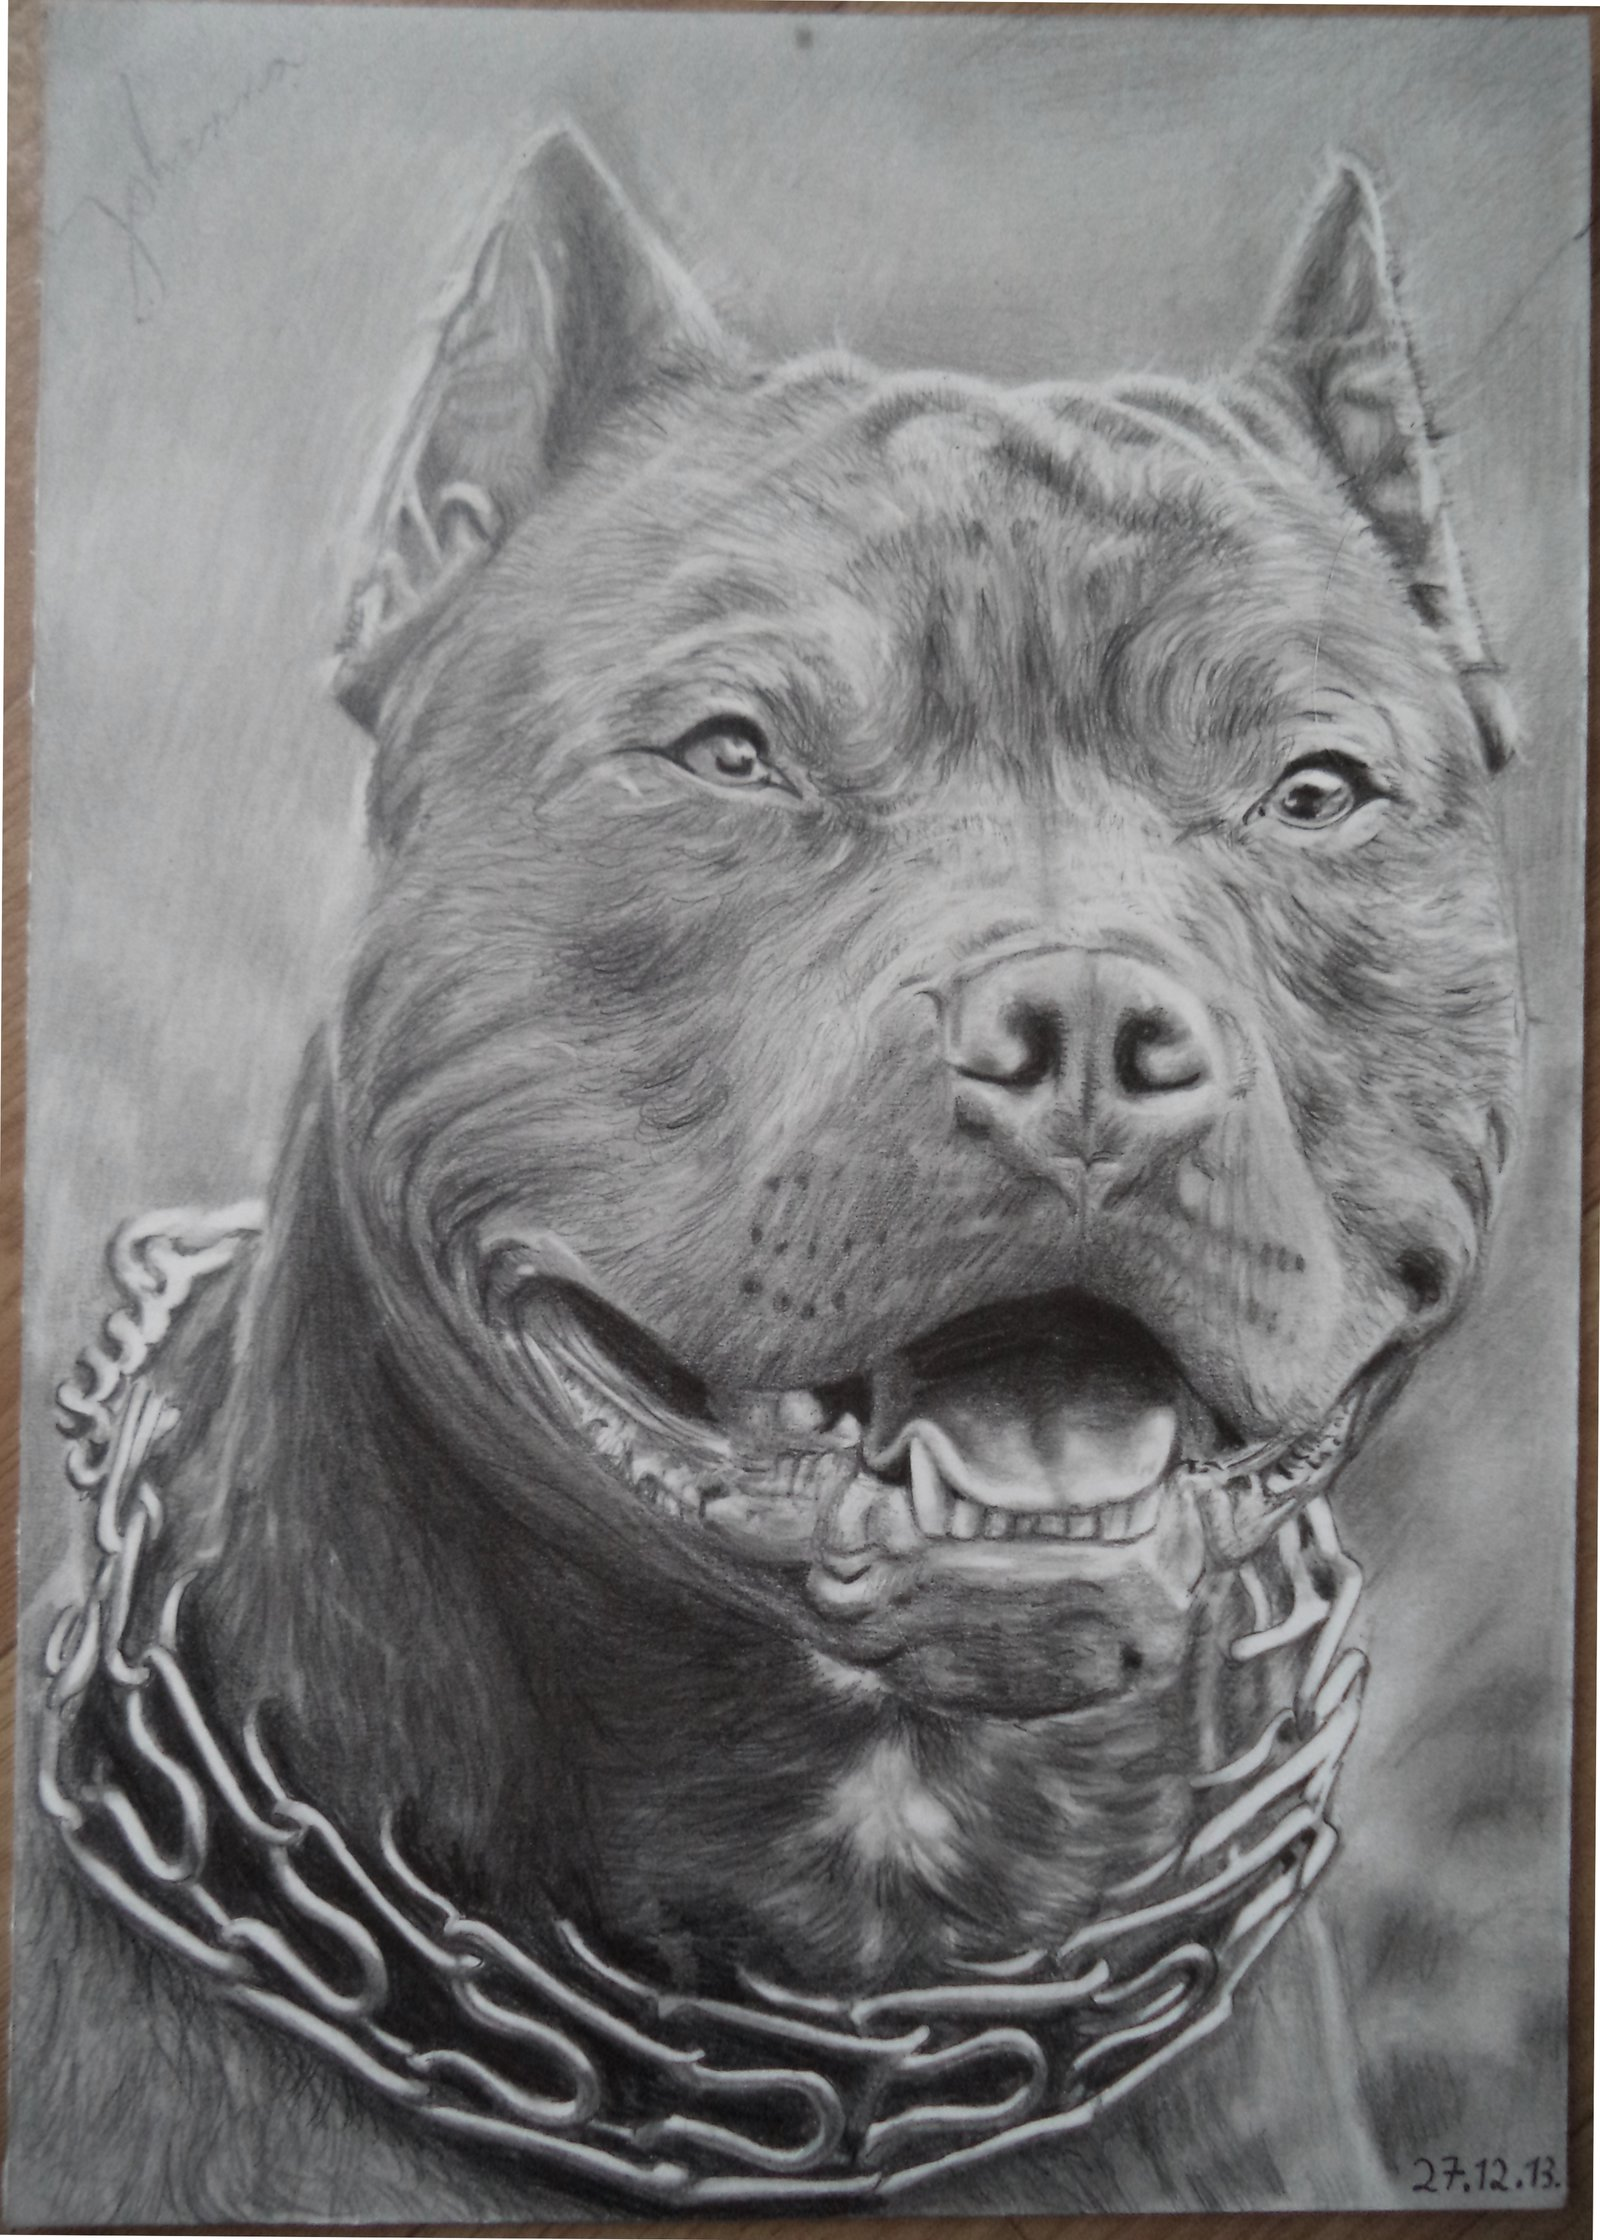 Drawn pitbull pencil drawing Pitbull a Pitbull Valyanna8361 Drawing